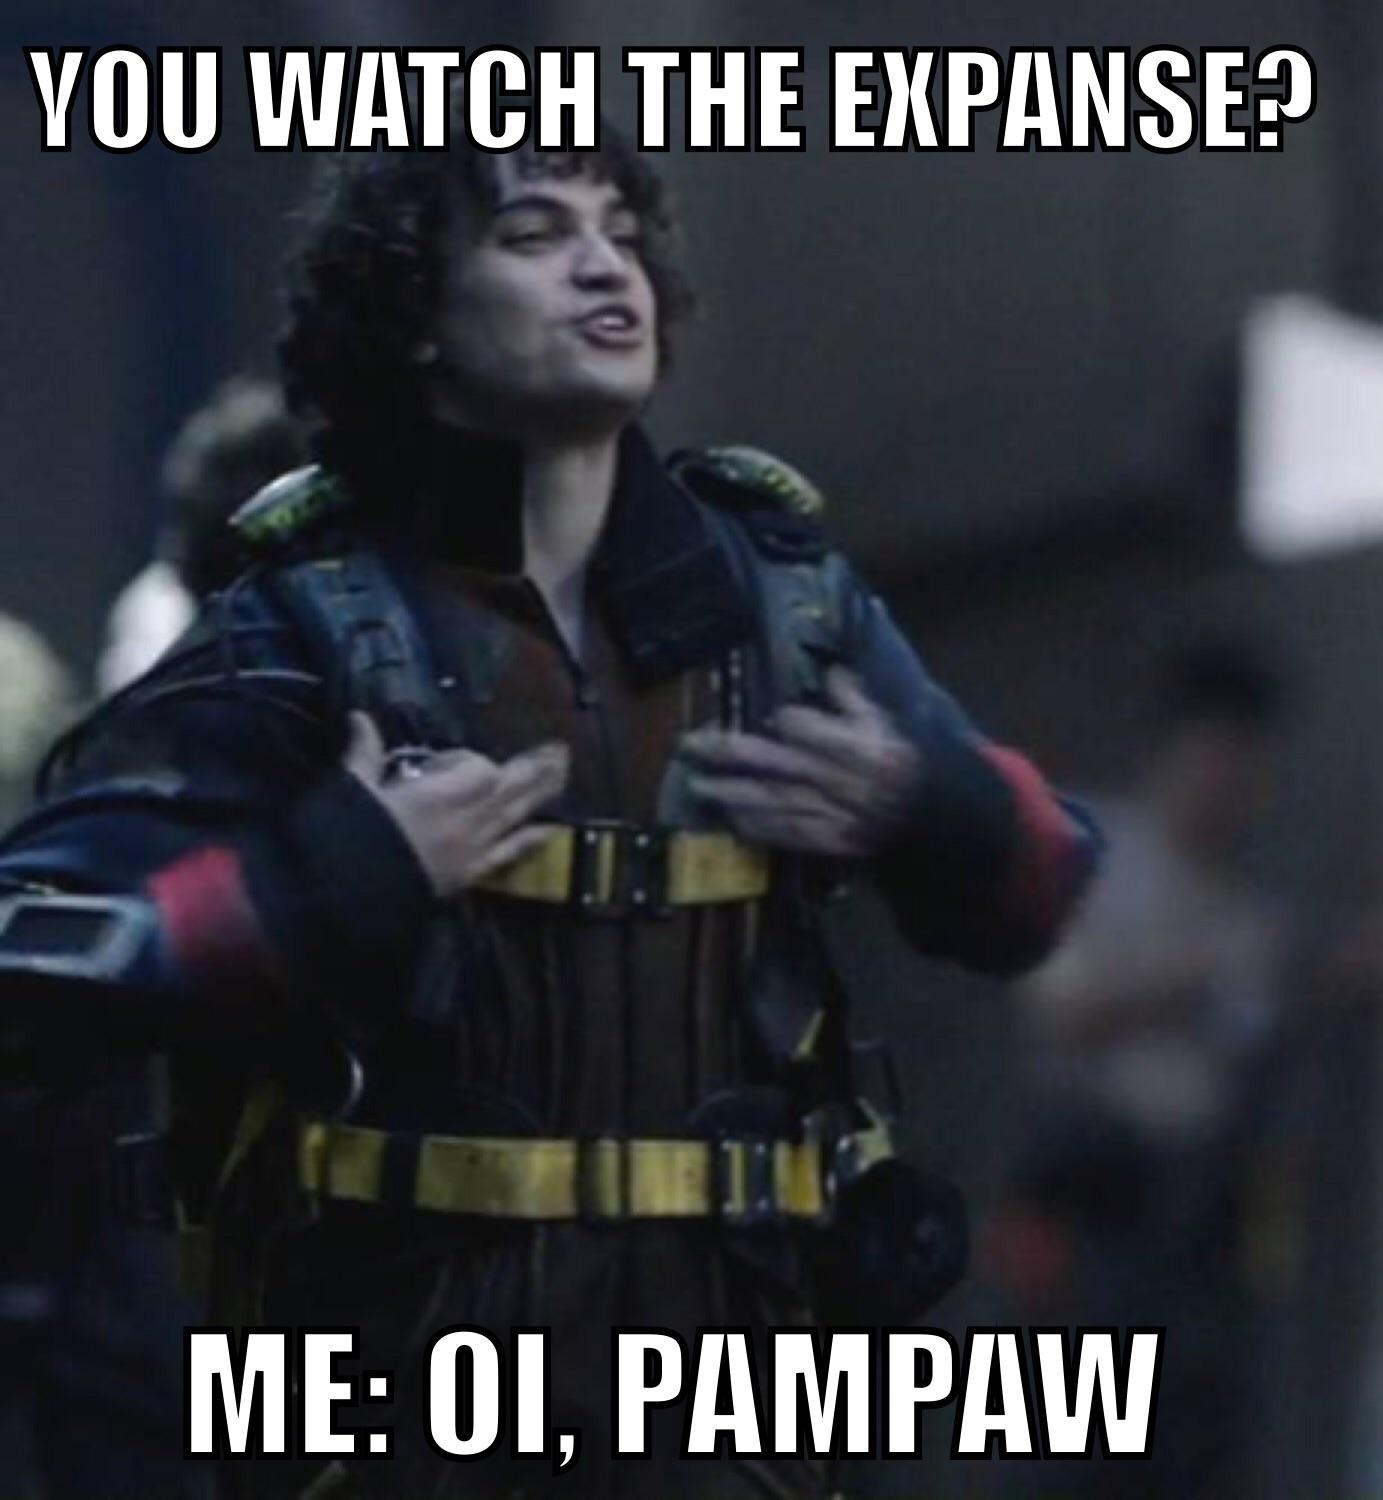 the expanse belter